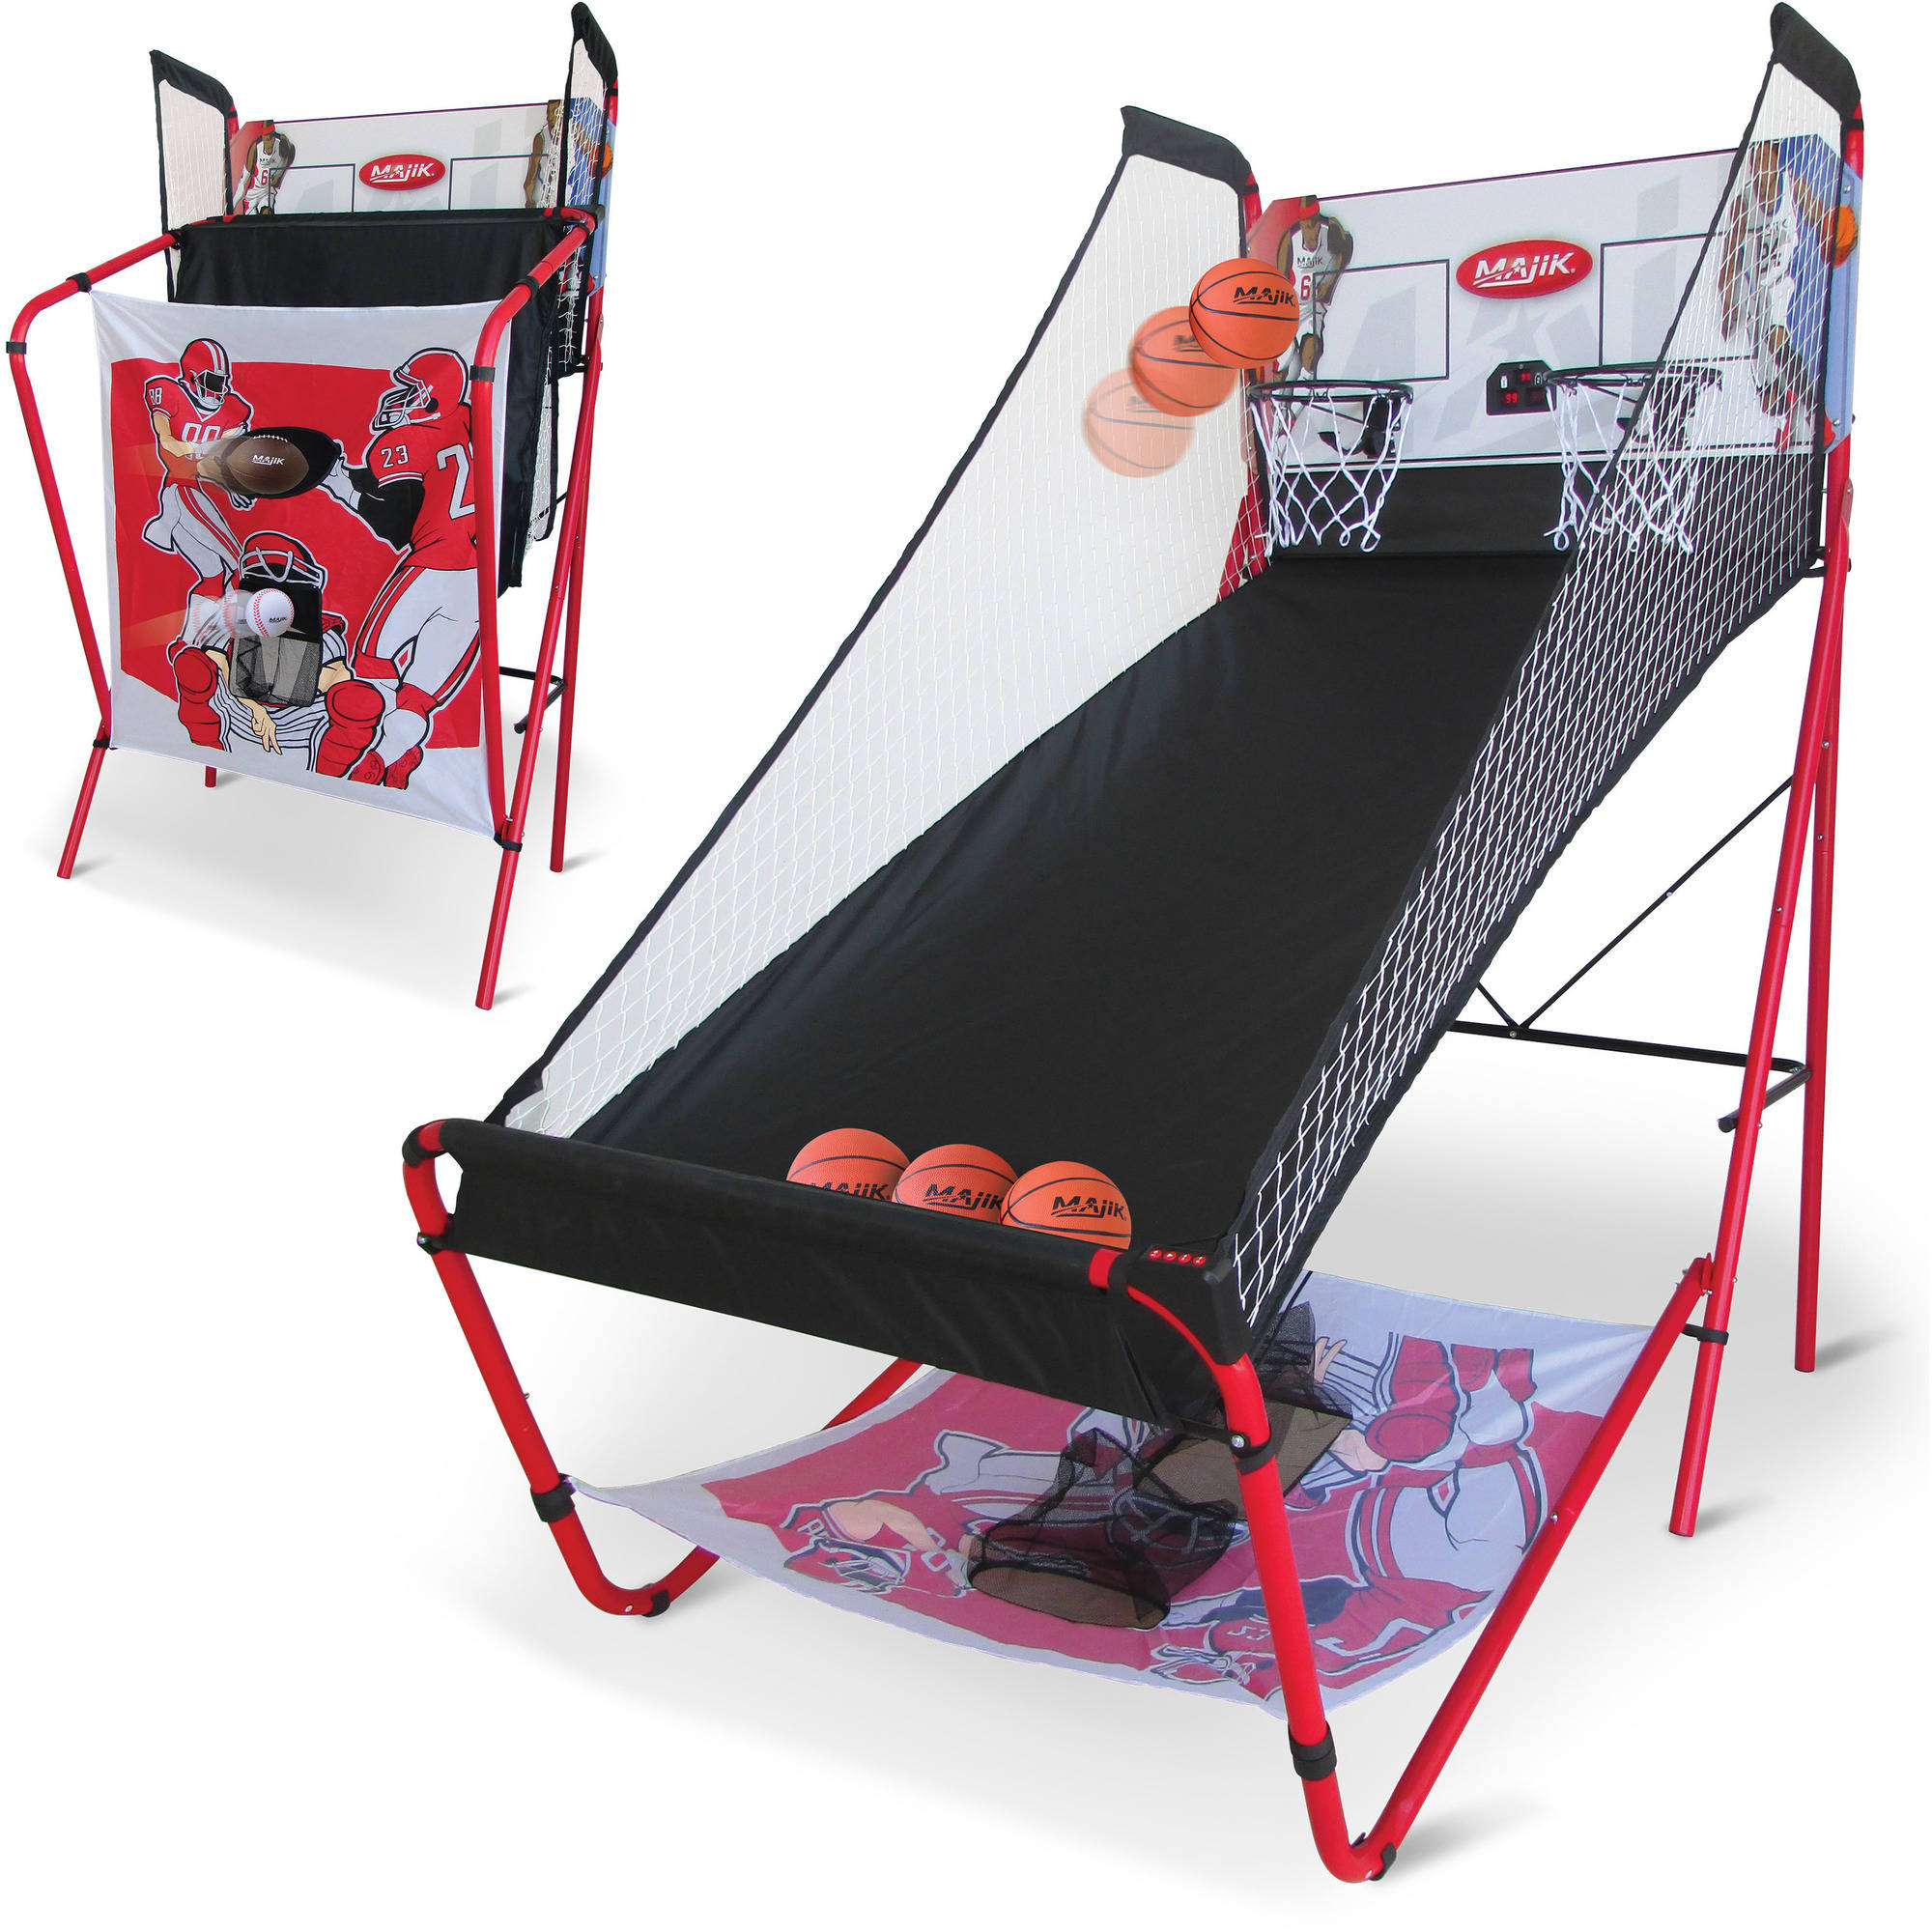 Majik 3-in-1 Triple Threat Sport Center with Automatic LED Scoring